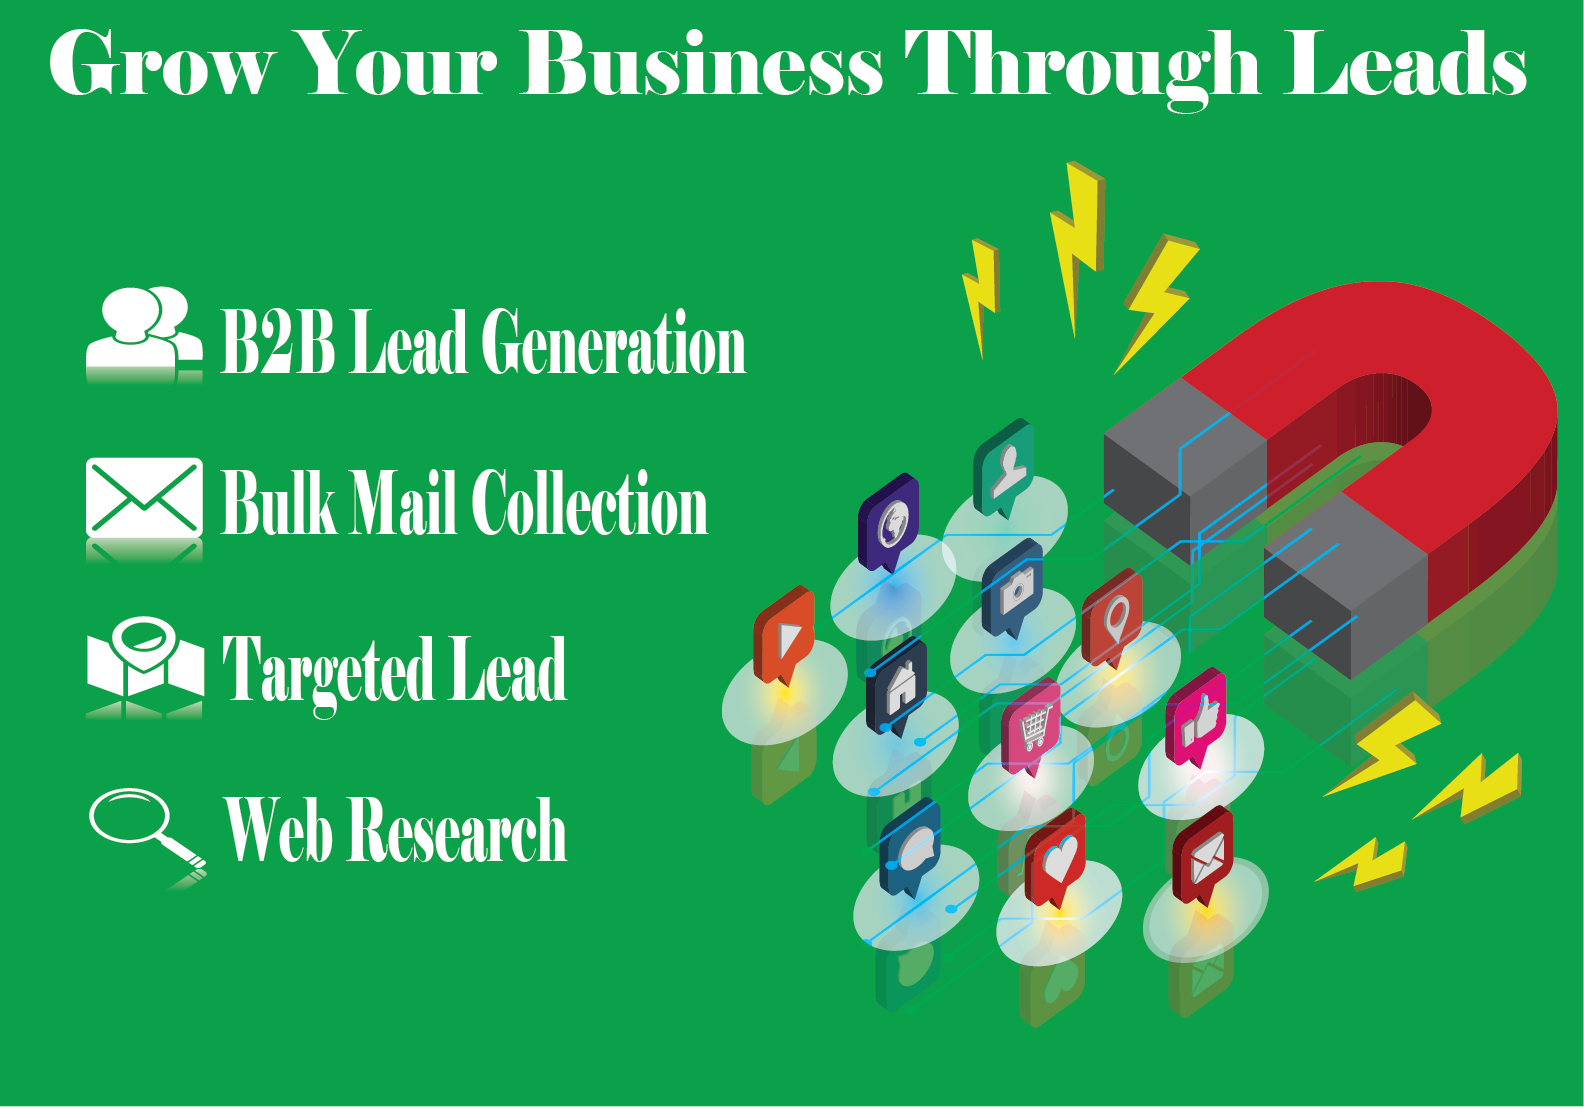 I will provide authentic leads to grow your business